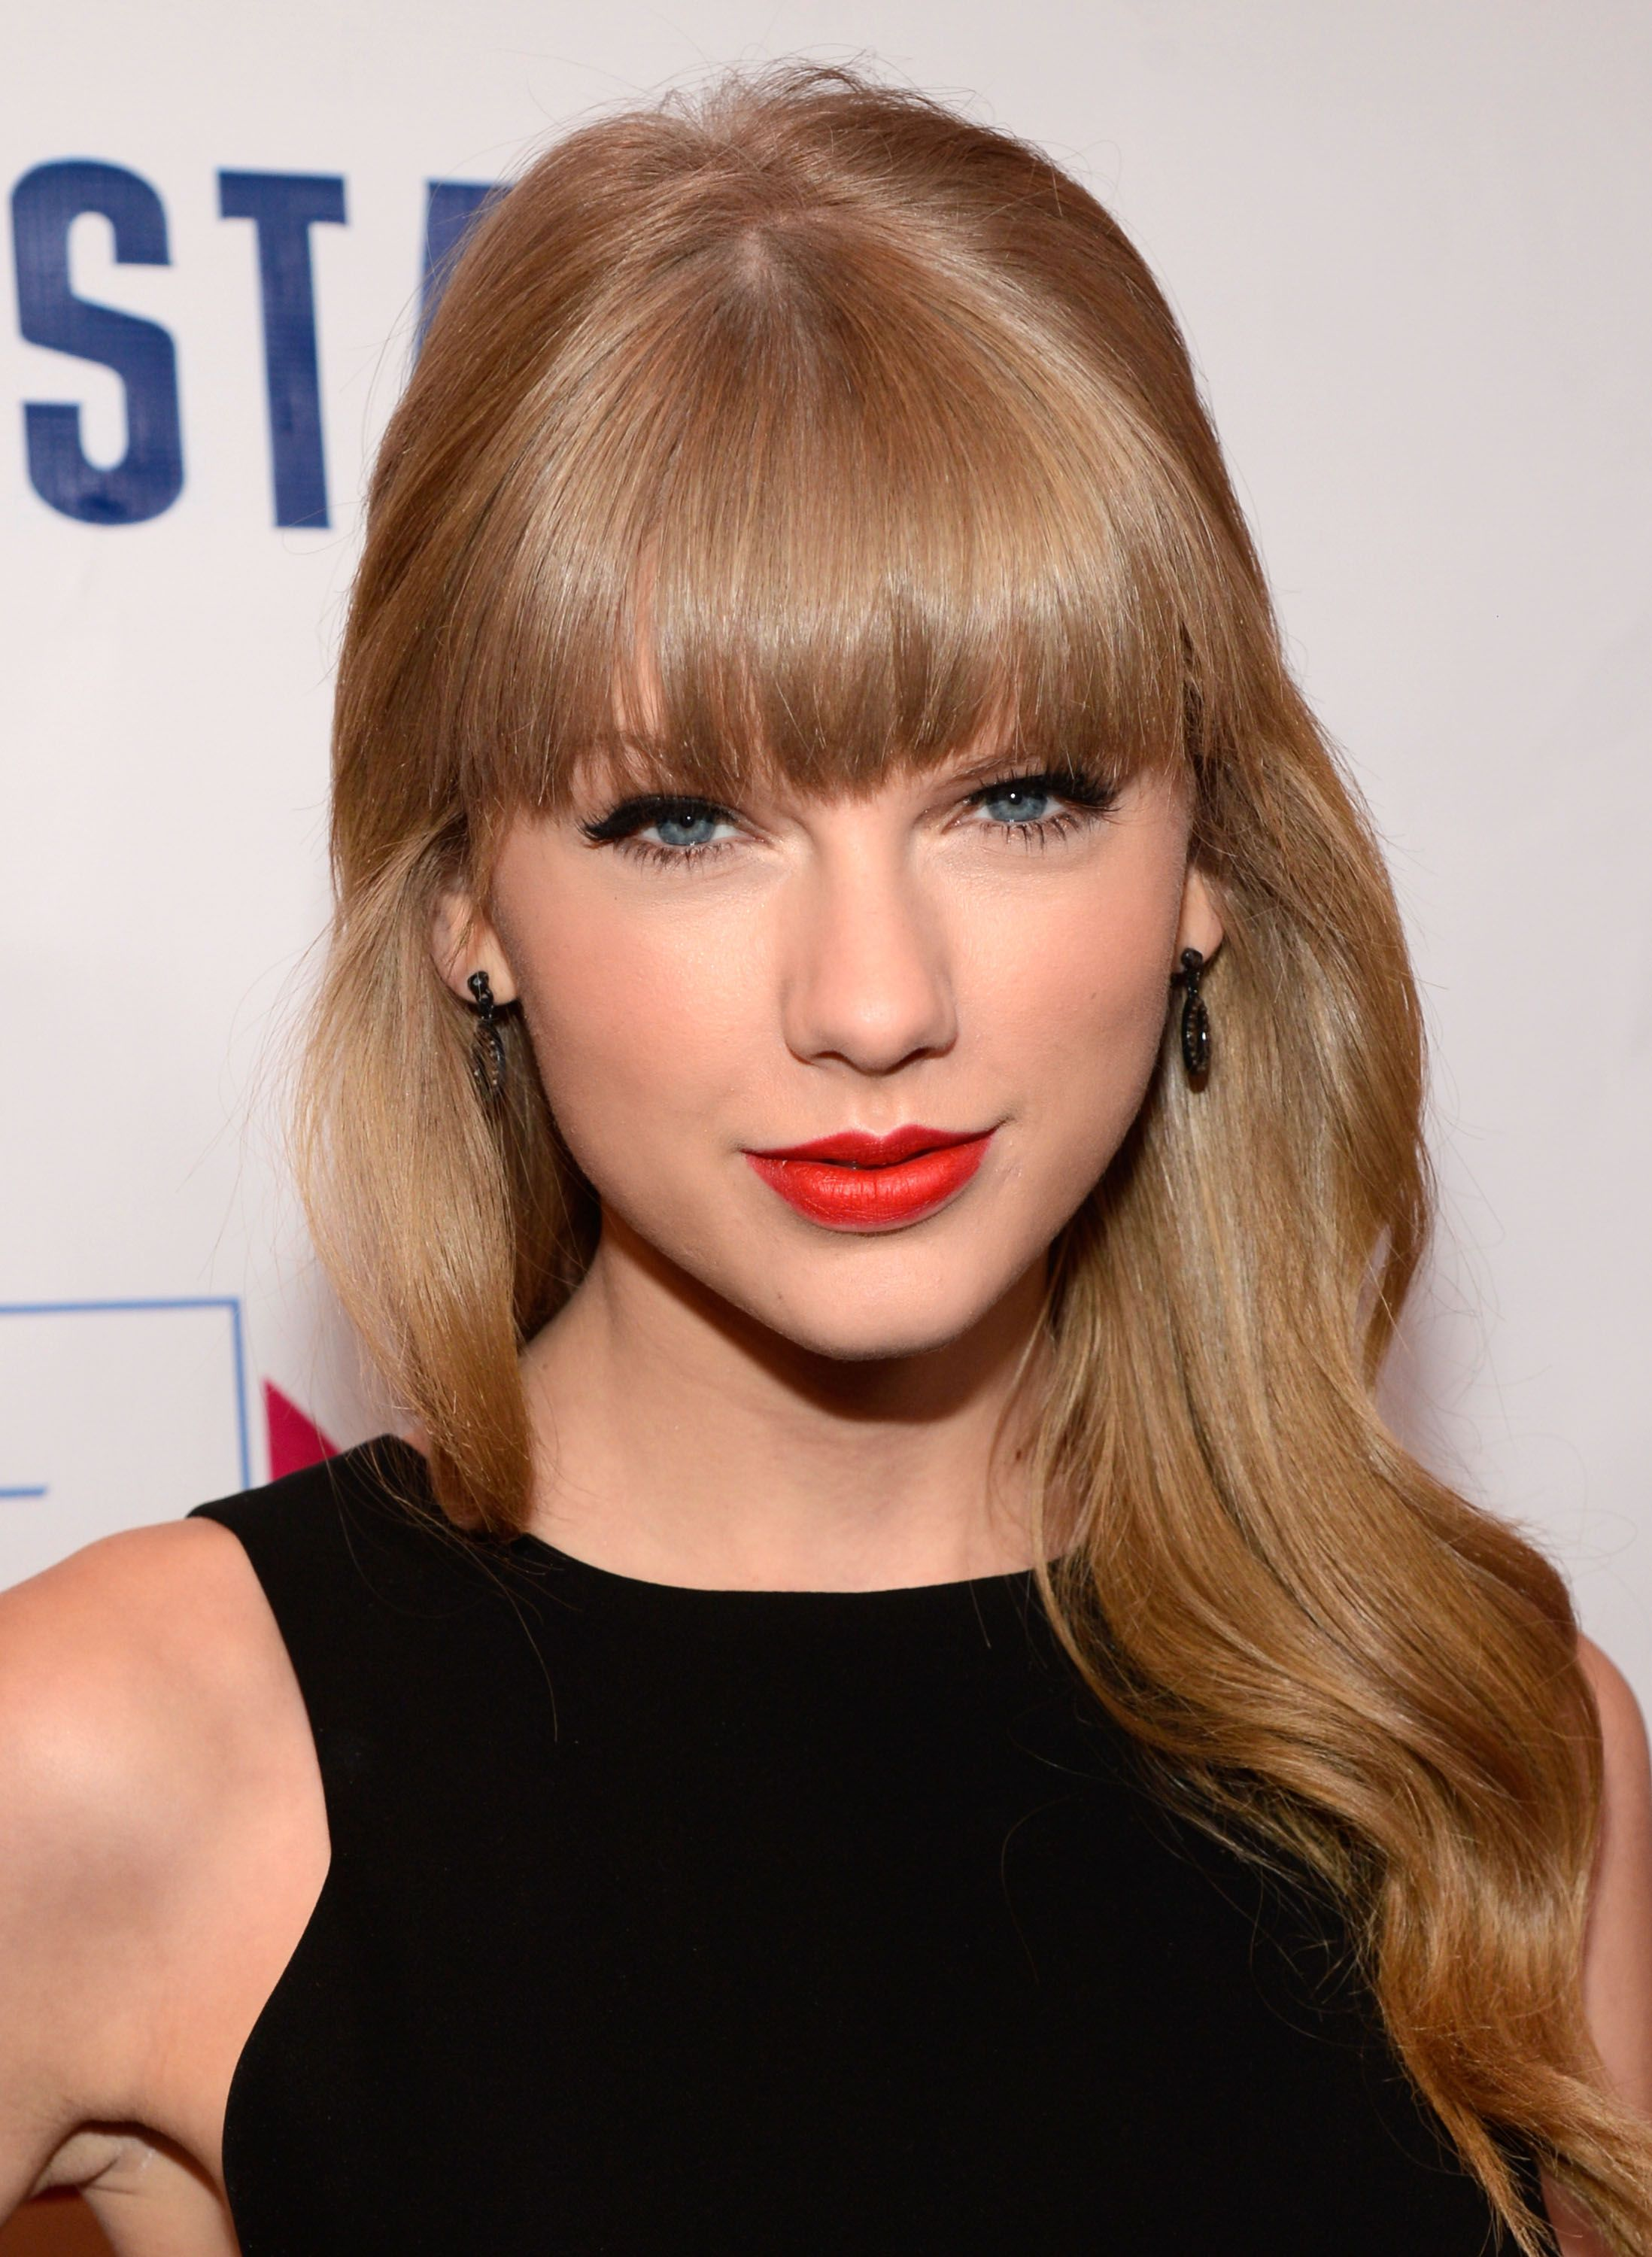 25 Times Taylor Swift Had The Same 5 Hairstyles Taylor Swift